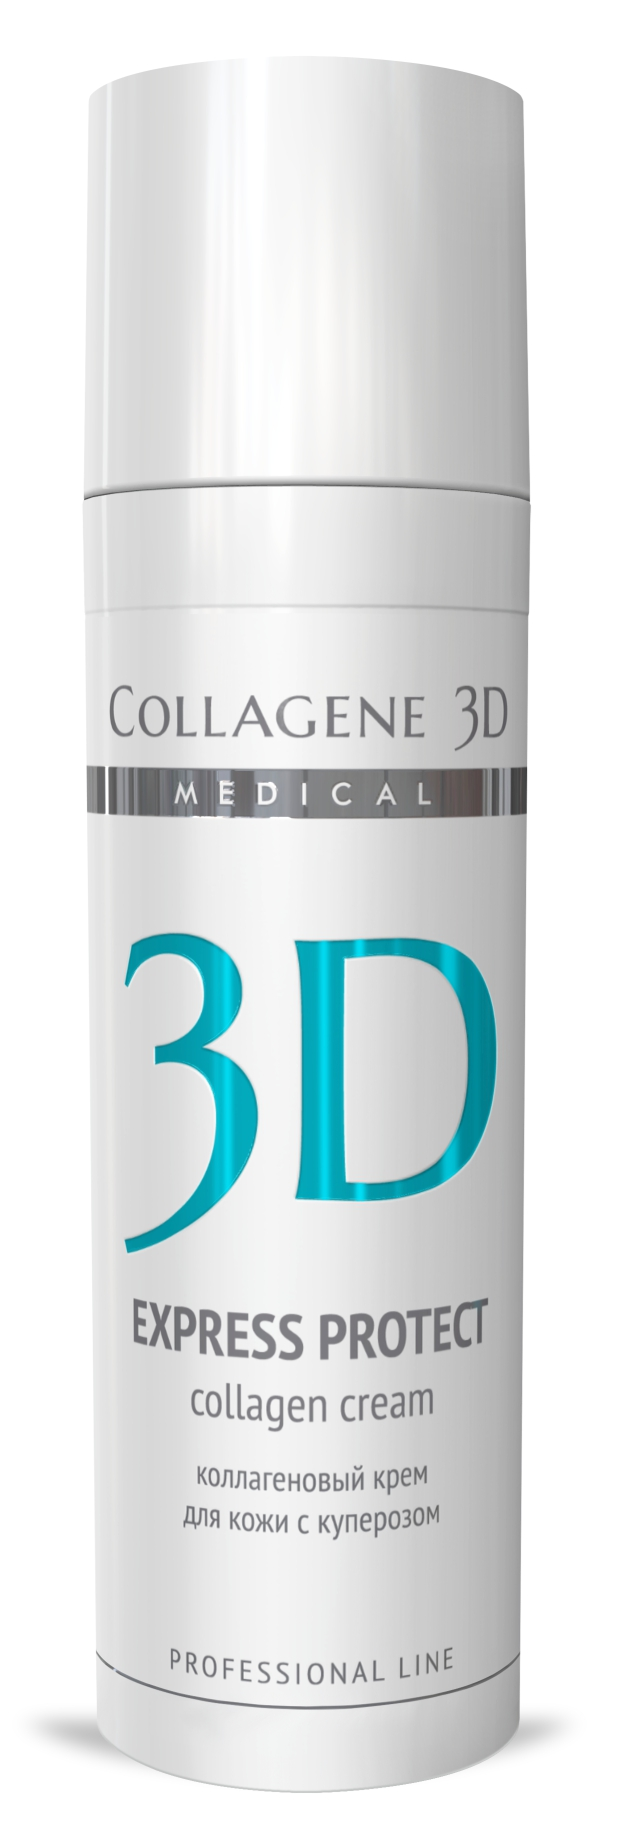 "MEDICAL COLLAGENE 3D Крем с коллагеном и софорой японской для лица ""Express Protect"" 30мл проф."